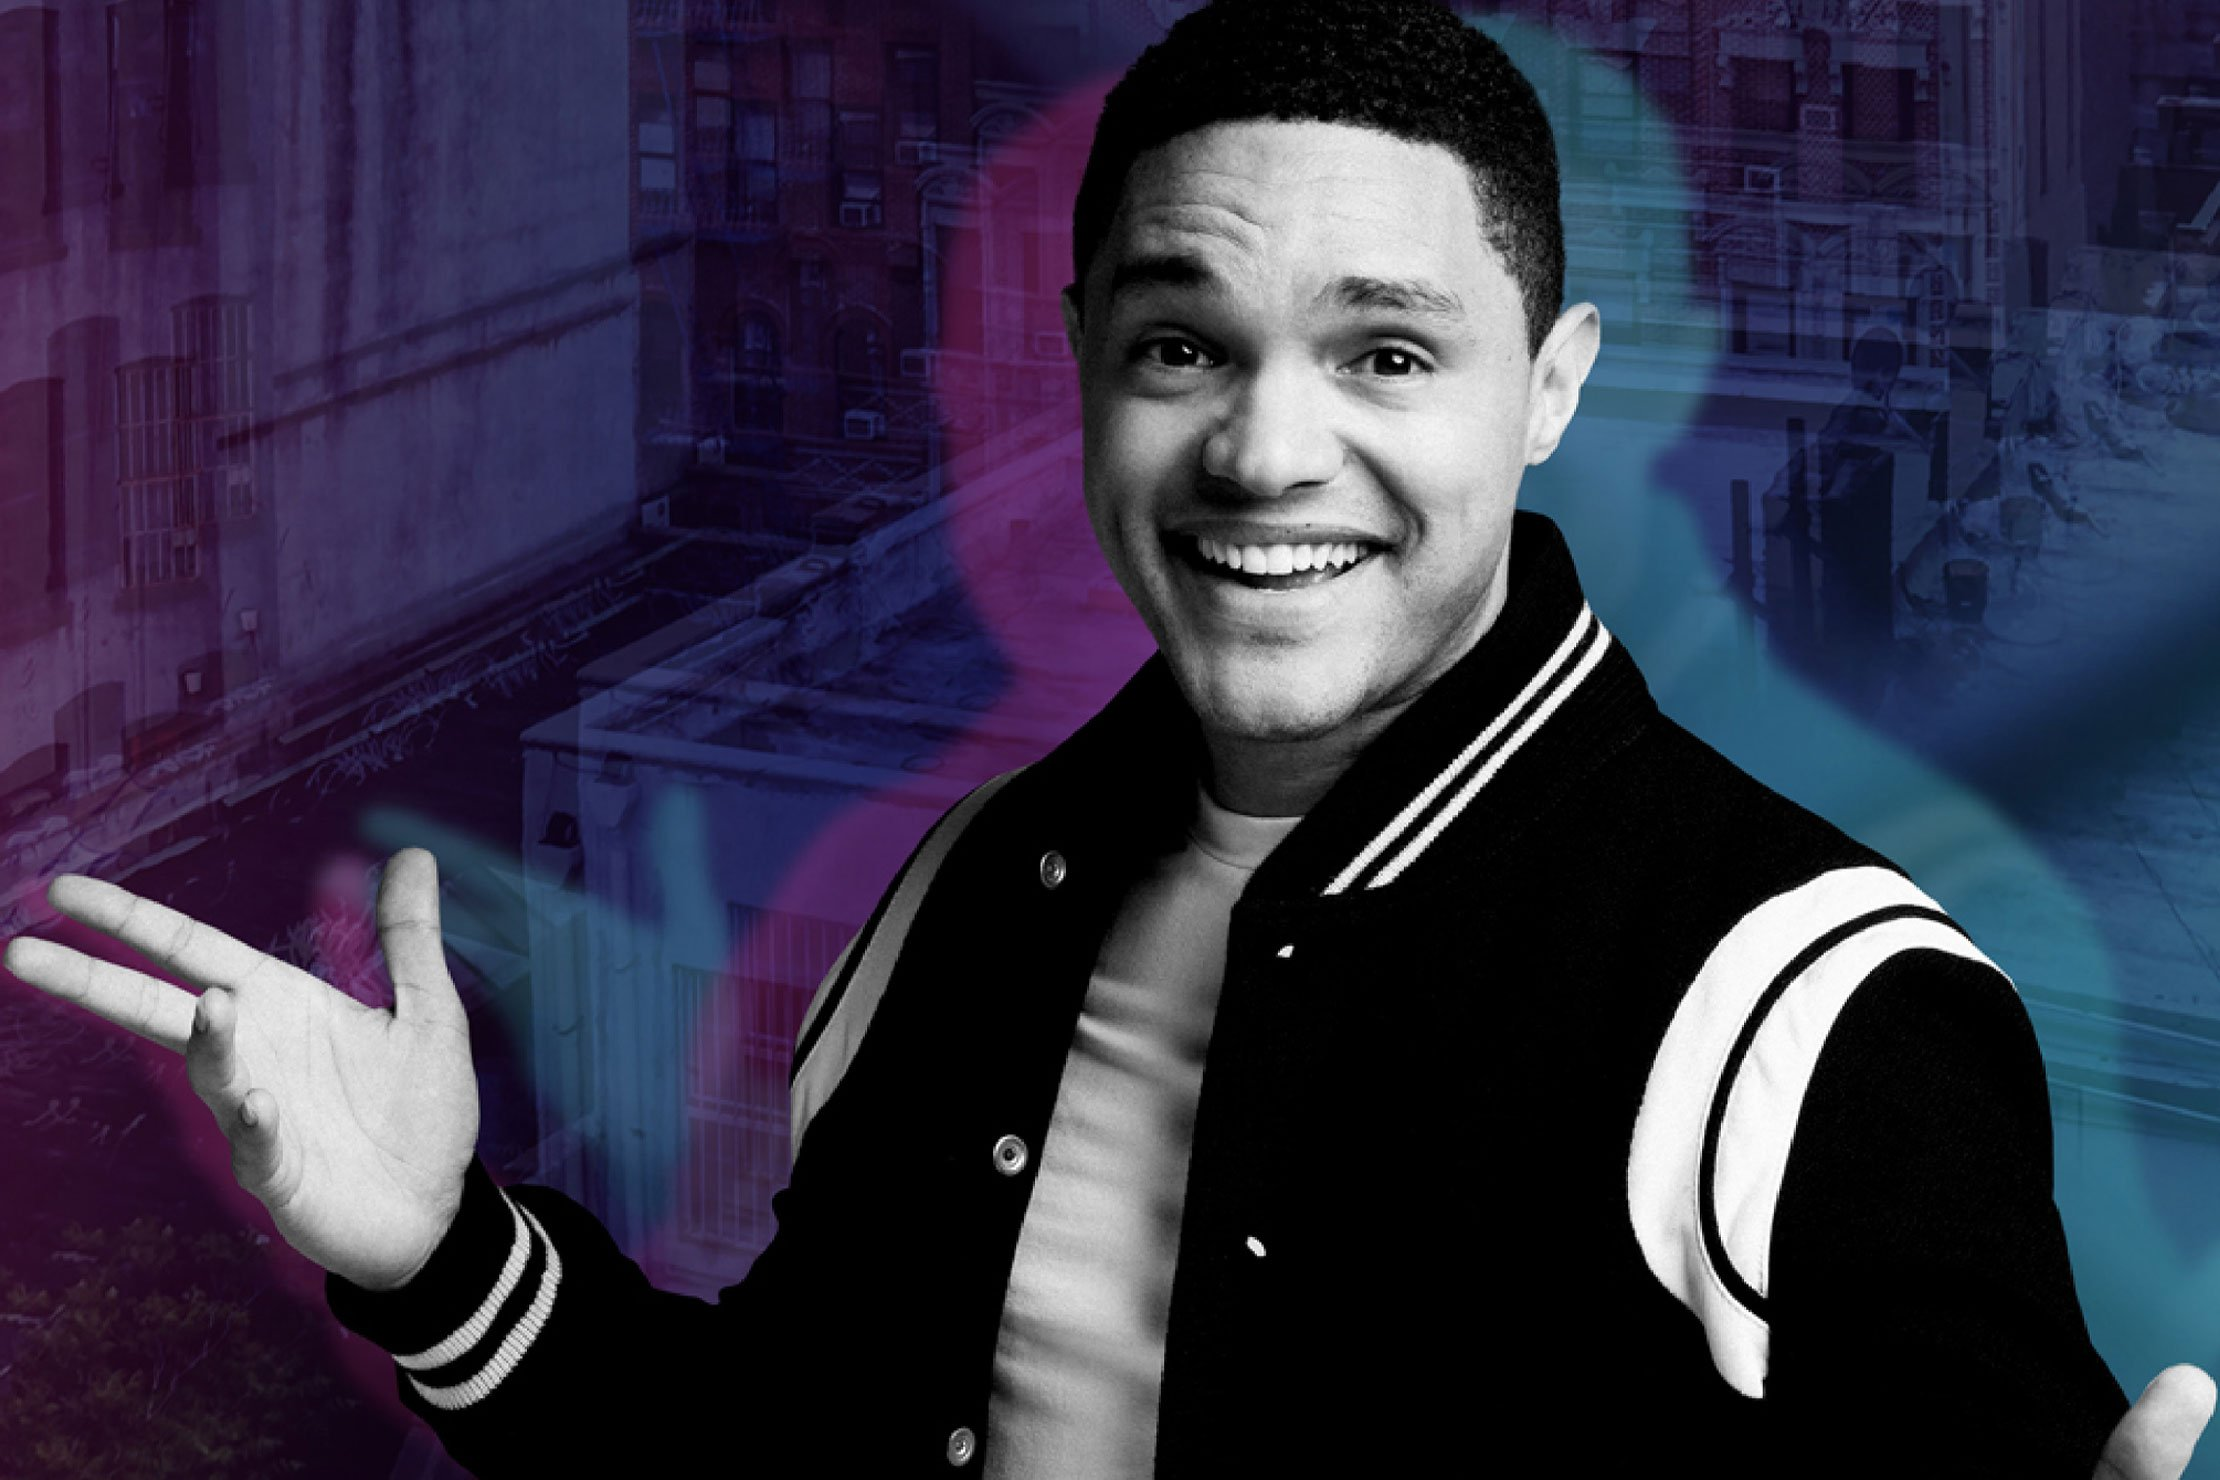 TREVOR NOAH RESCHEDULES LONDON AND GLASGOW LOUD & CLEAR DATES TO SEPTEMBER 2020